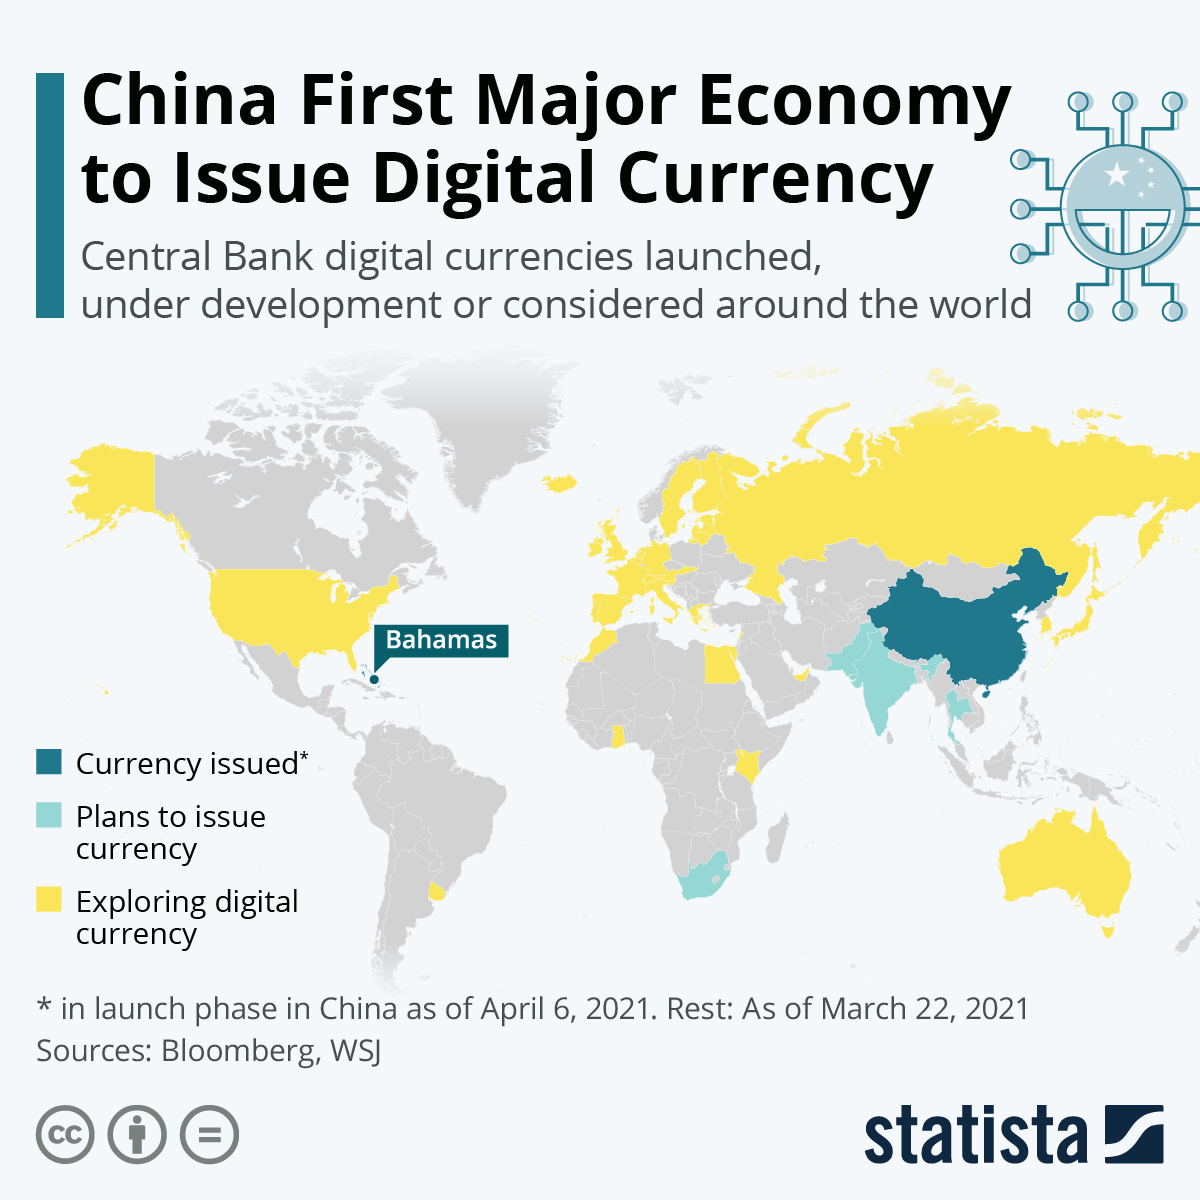 China First Major Economy to Issue Digital Currency